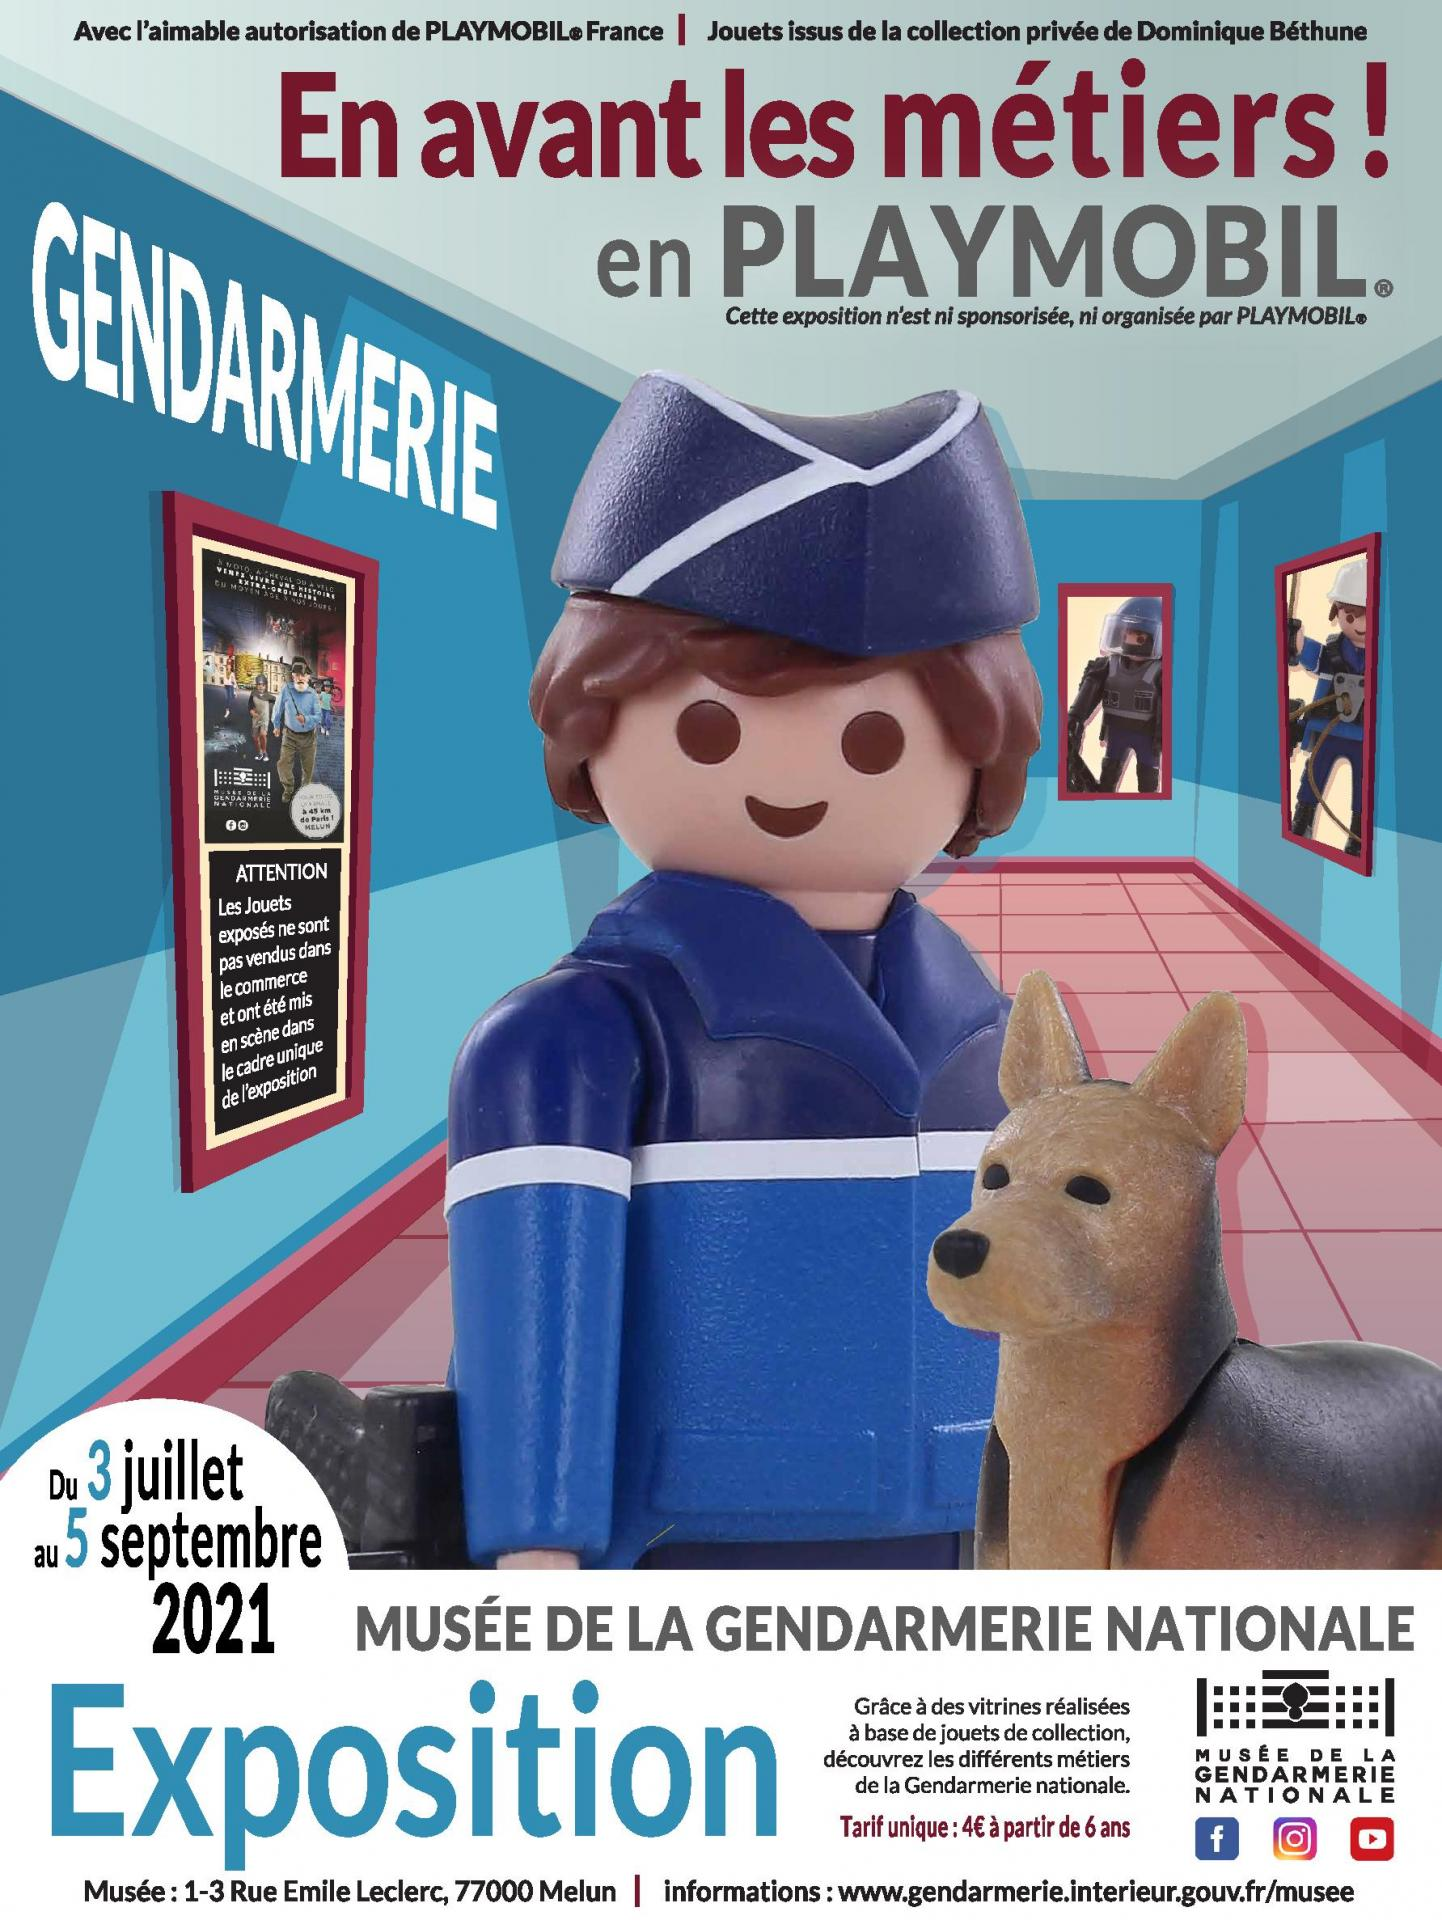 Affiche expo playmobil musee gendarmerie 2021 dominique bethune